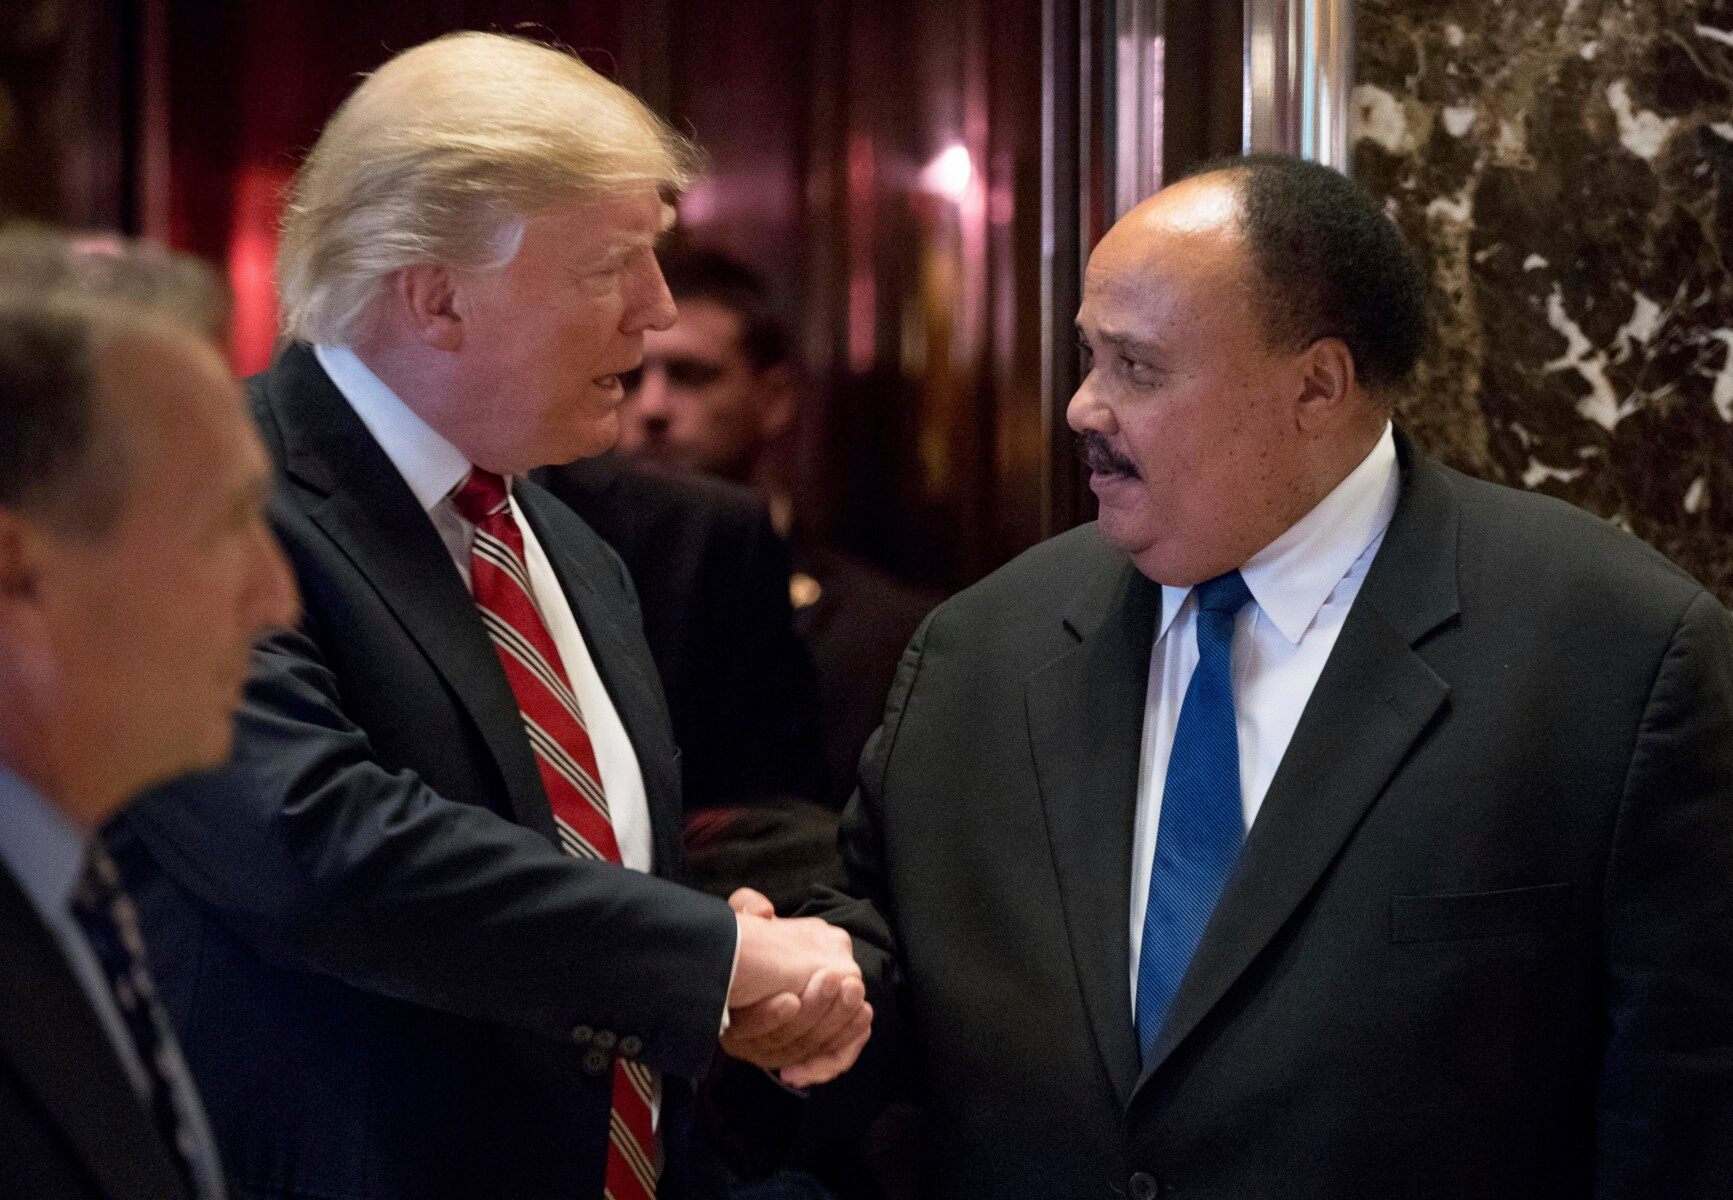 Martin Luther King, III: 'Change is in the air'